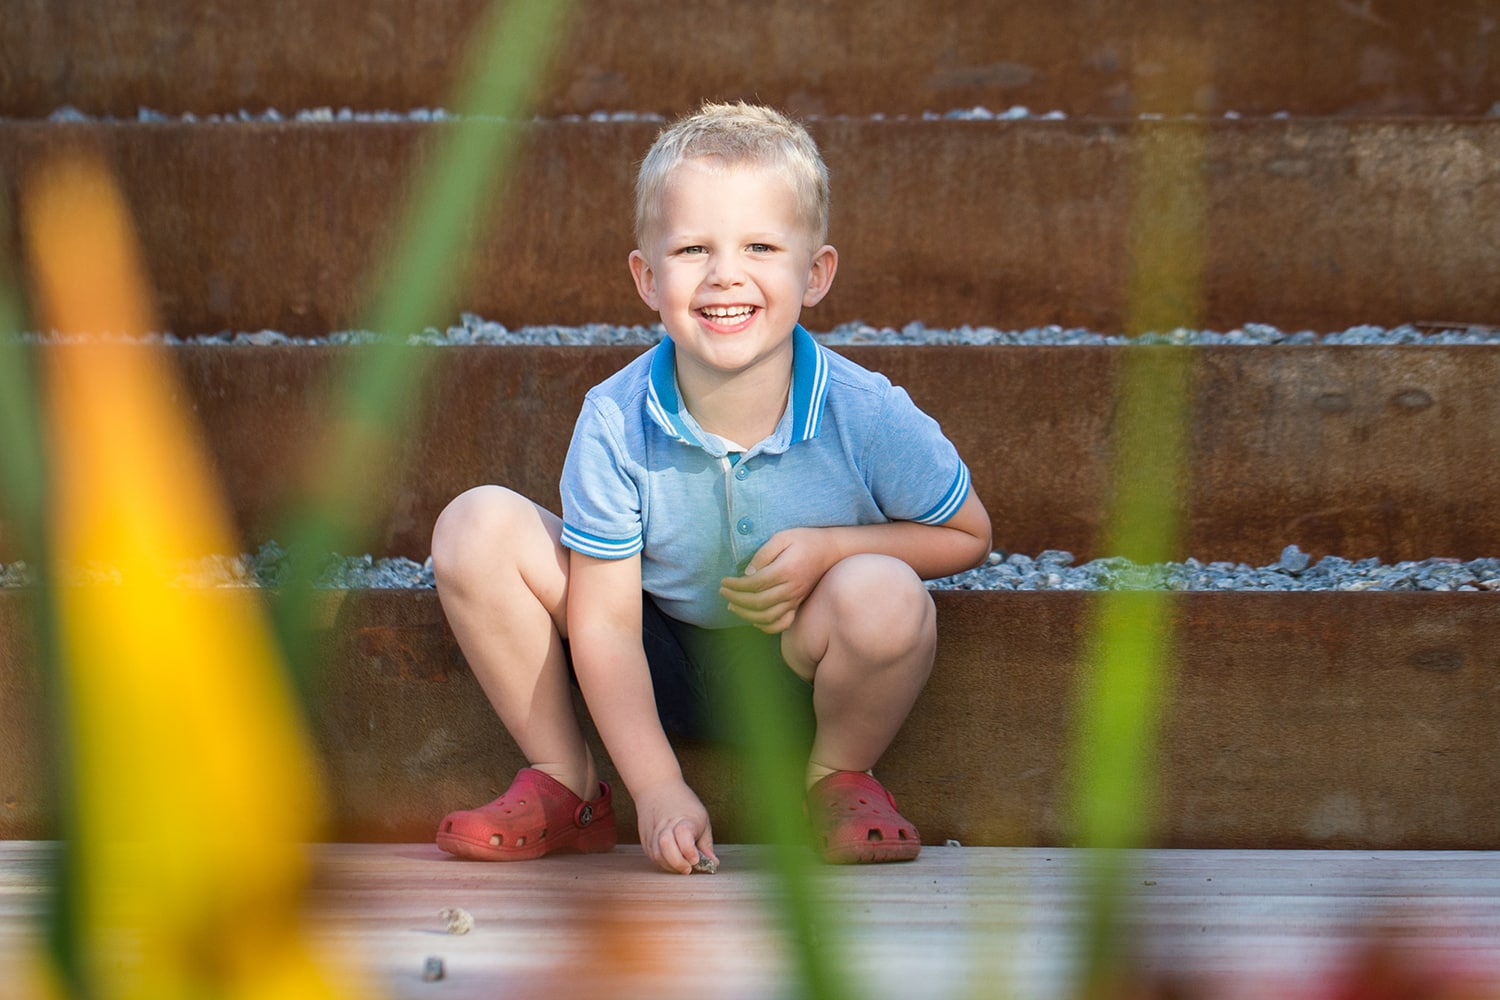 A boy plays with some stone during an outdoor family photography session